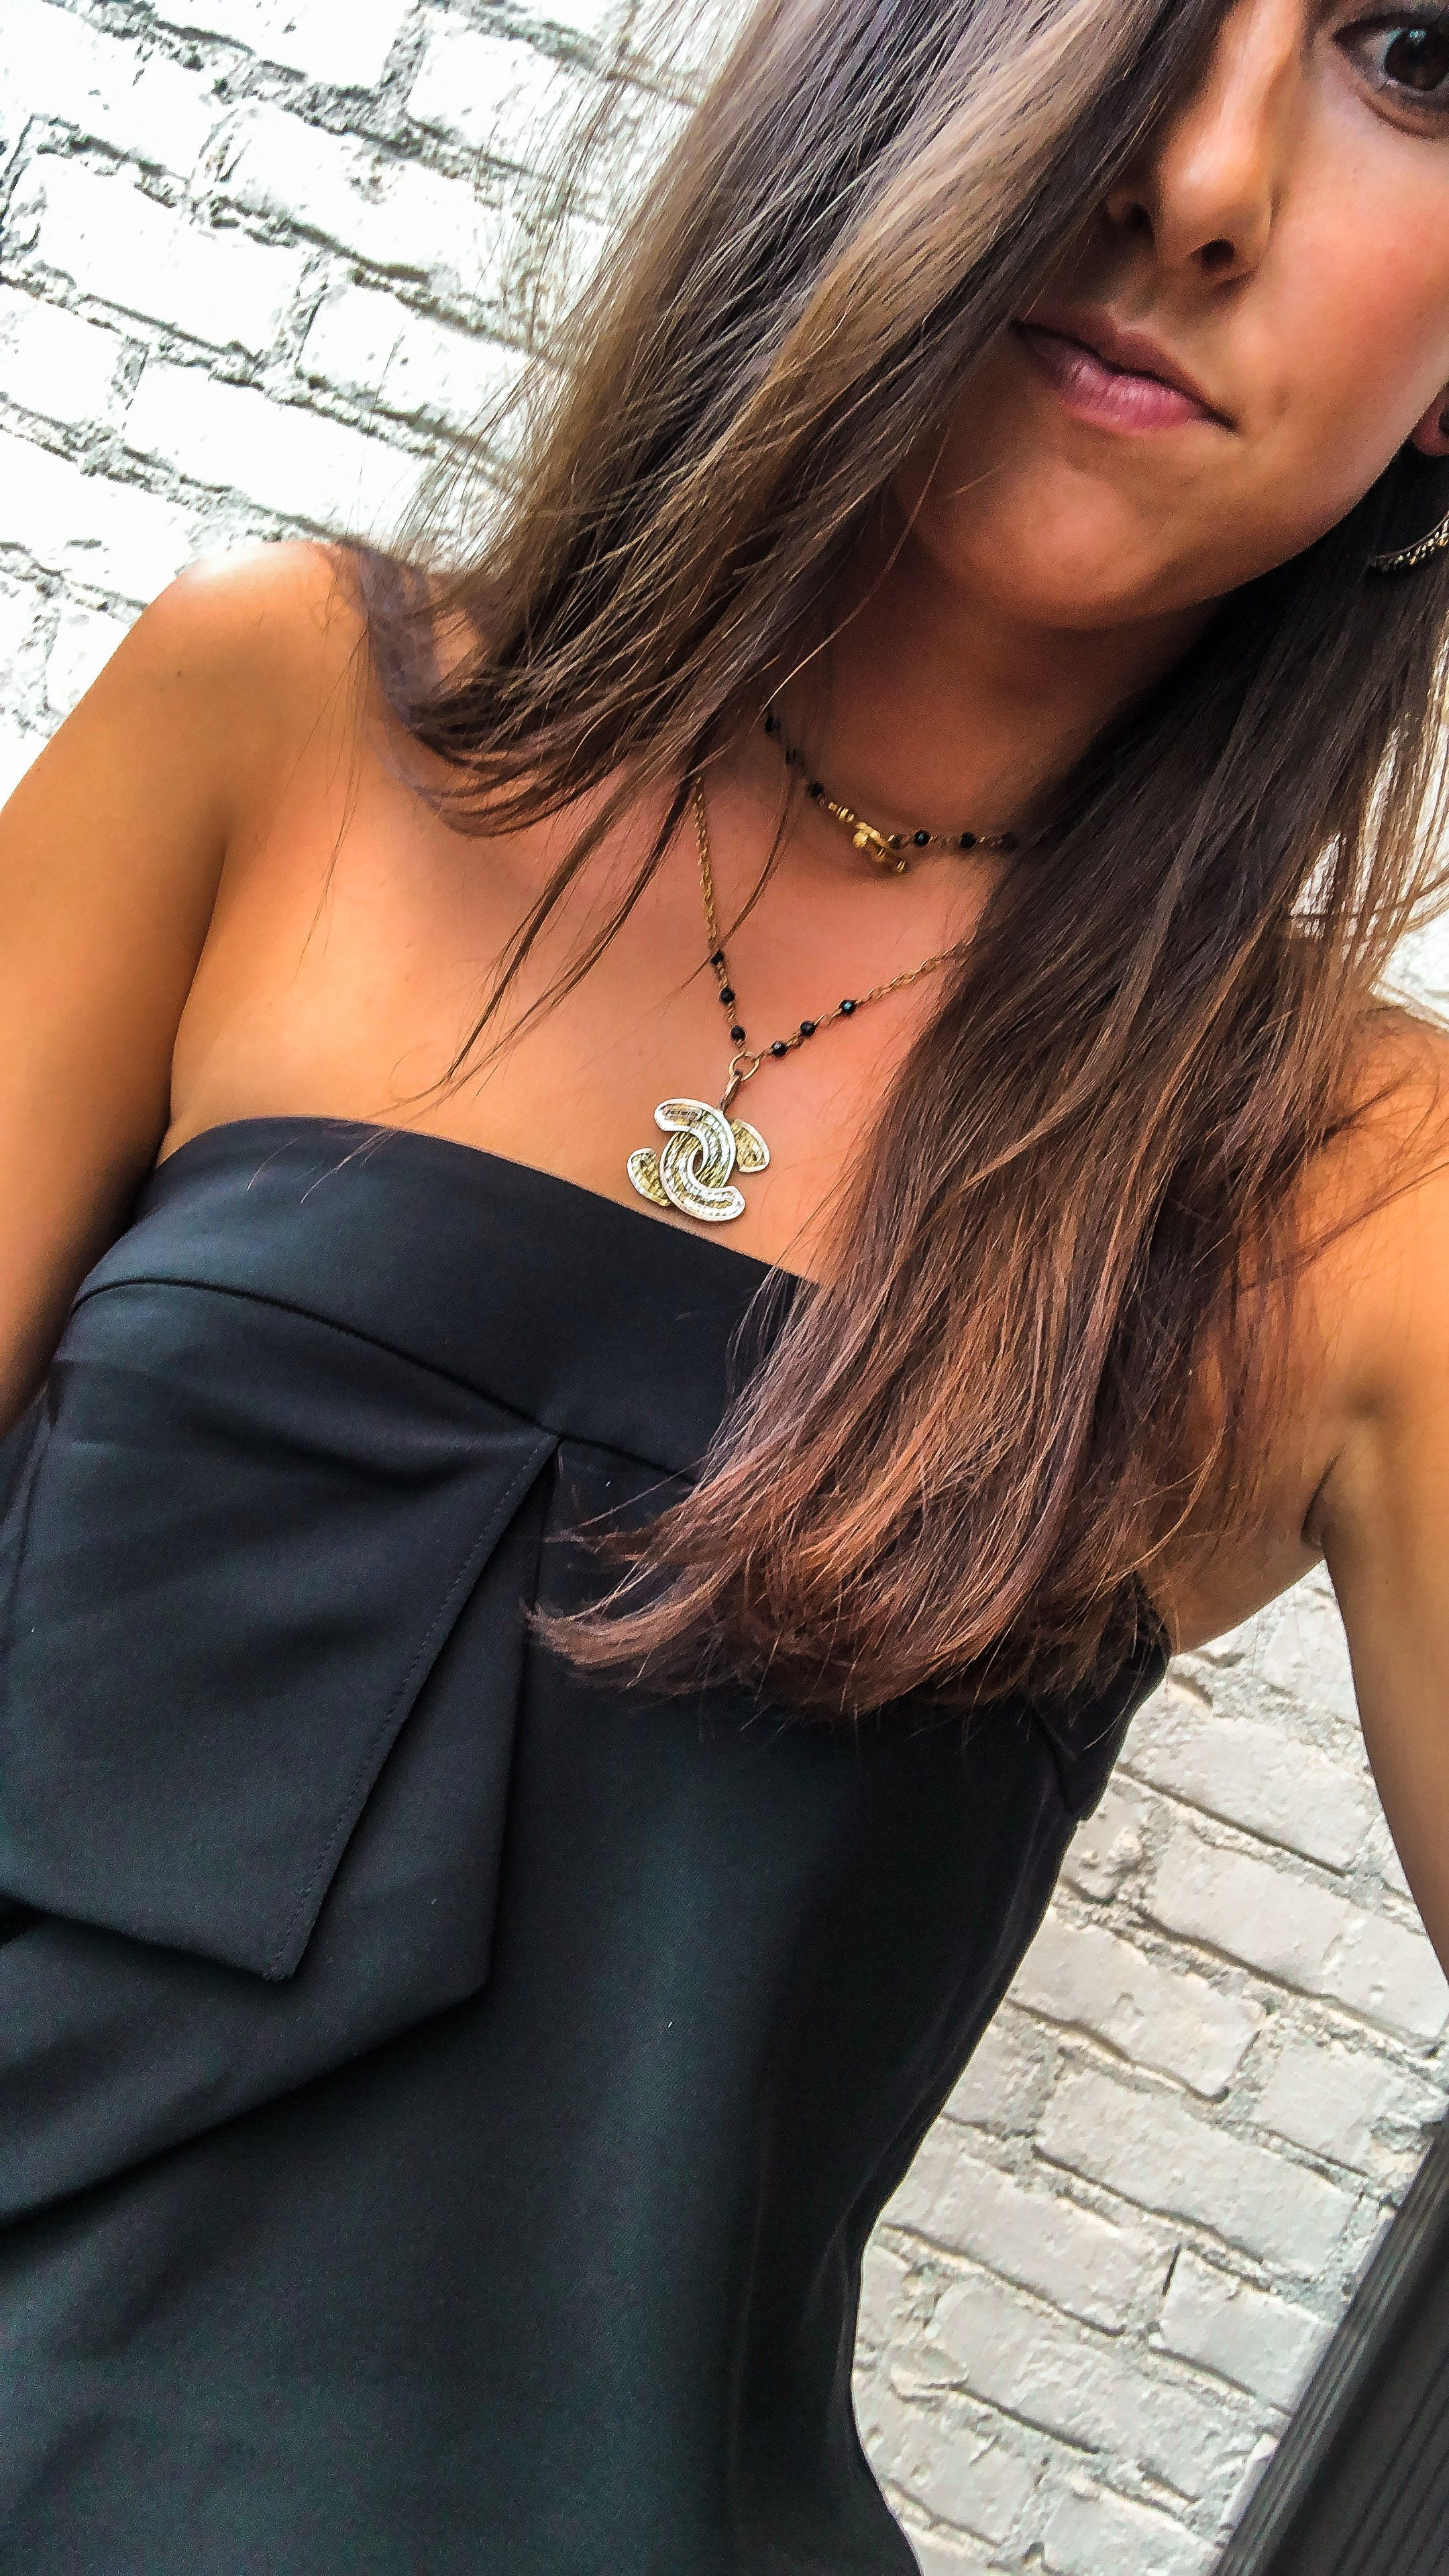 S K Y L A R Fashion, Strapless top, Perfect top